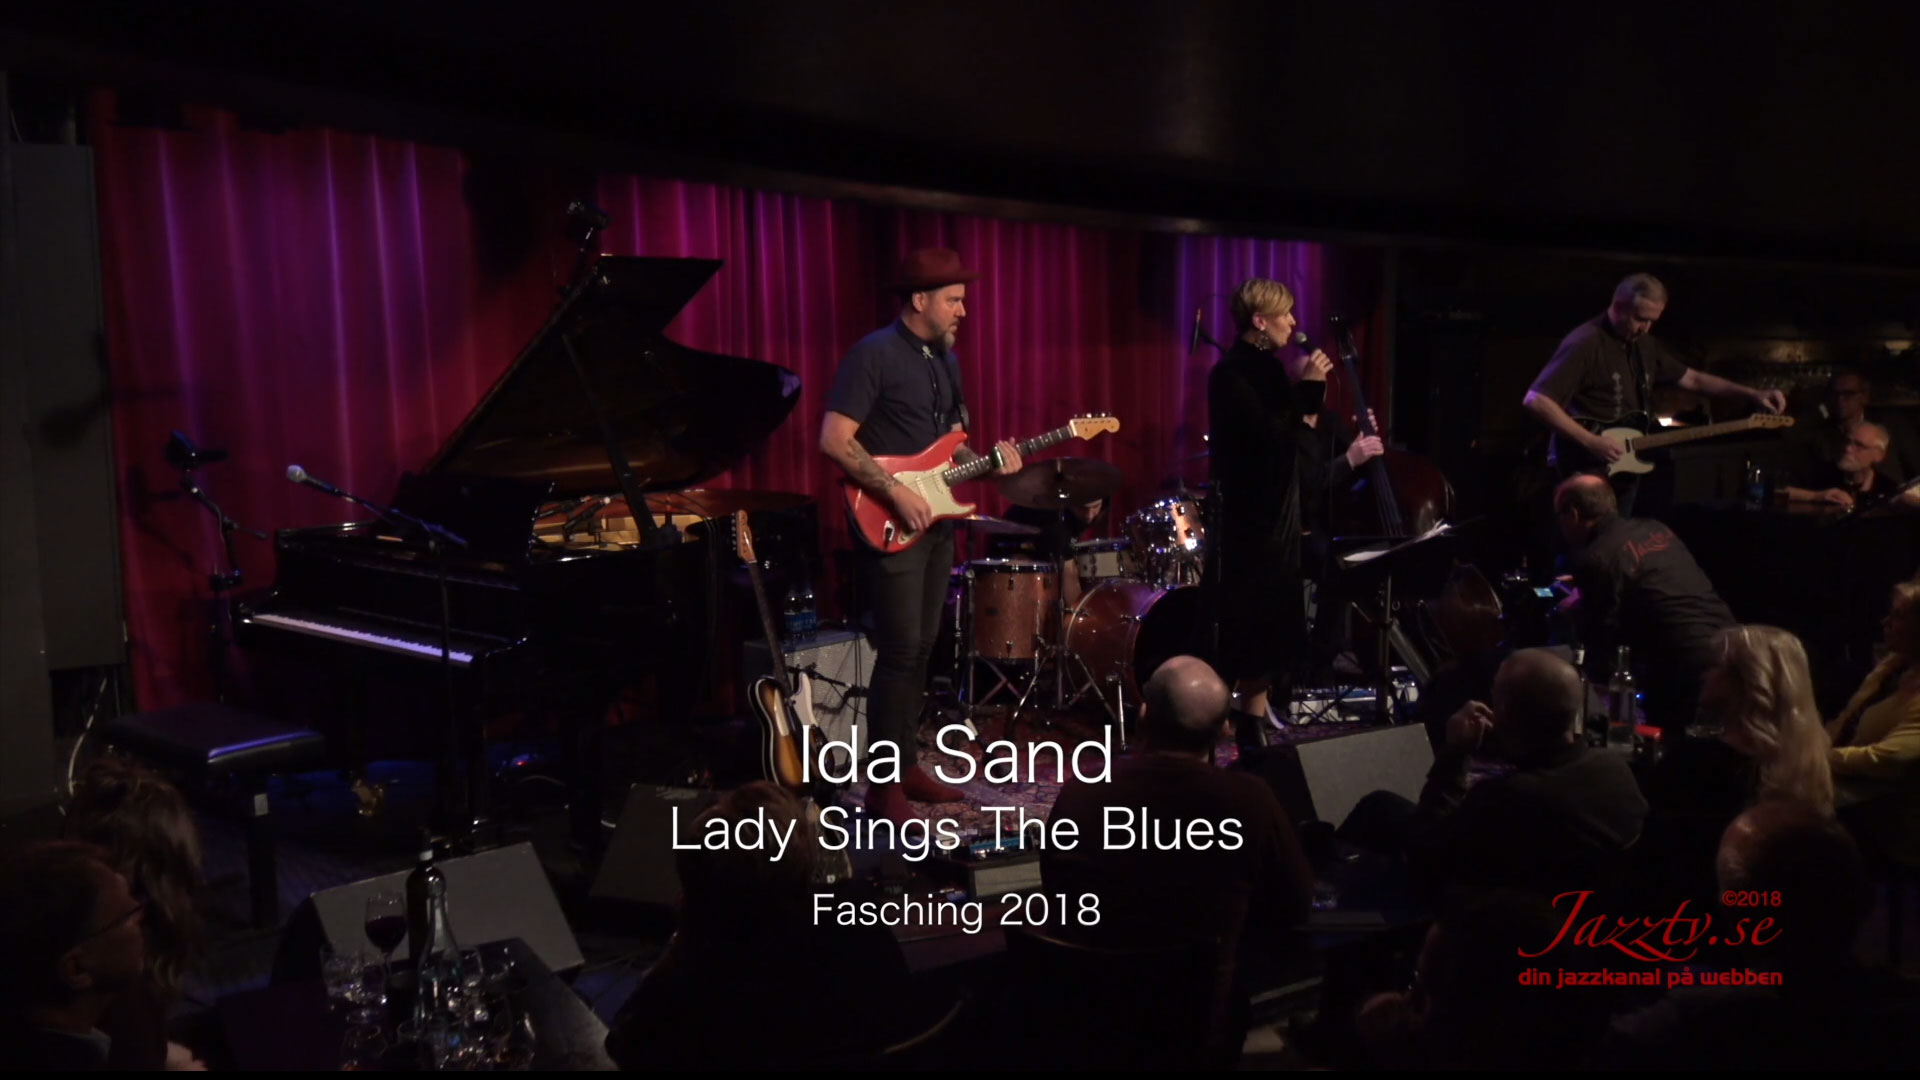 Ida Sand - Lady Sings the Blues